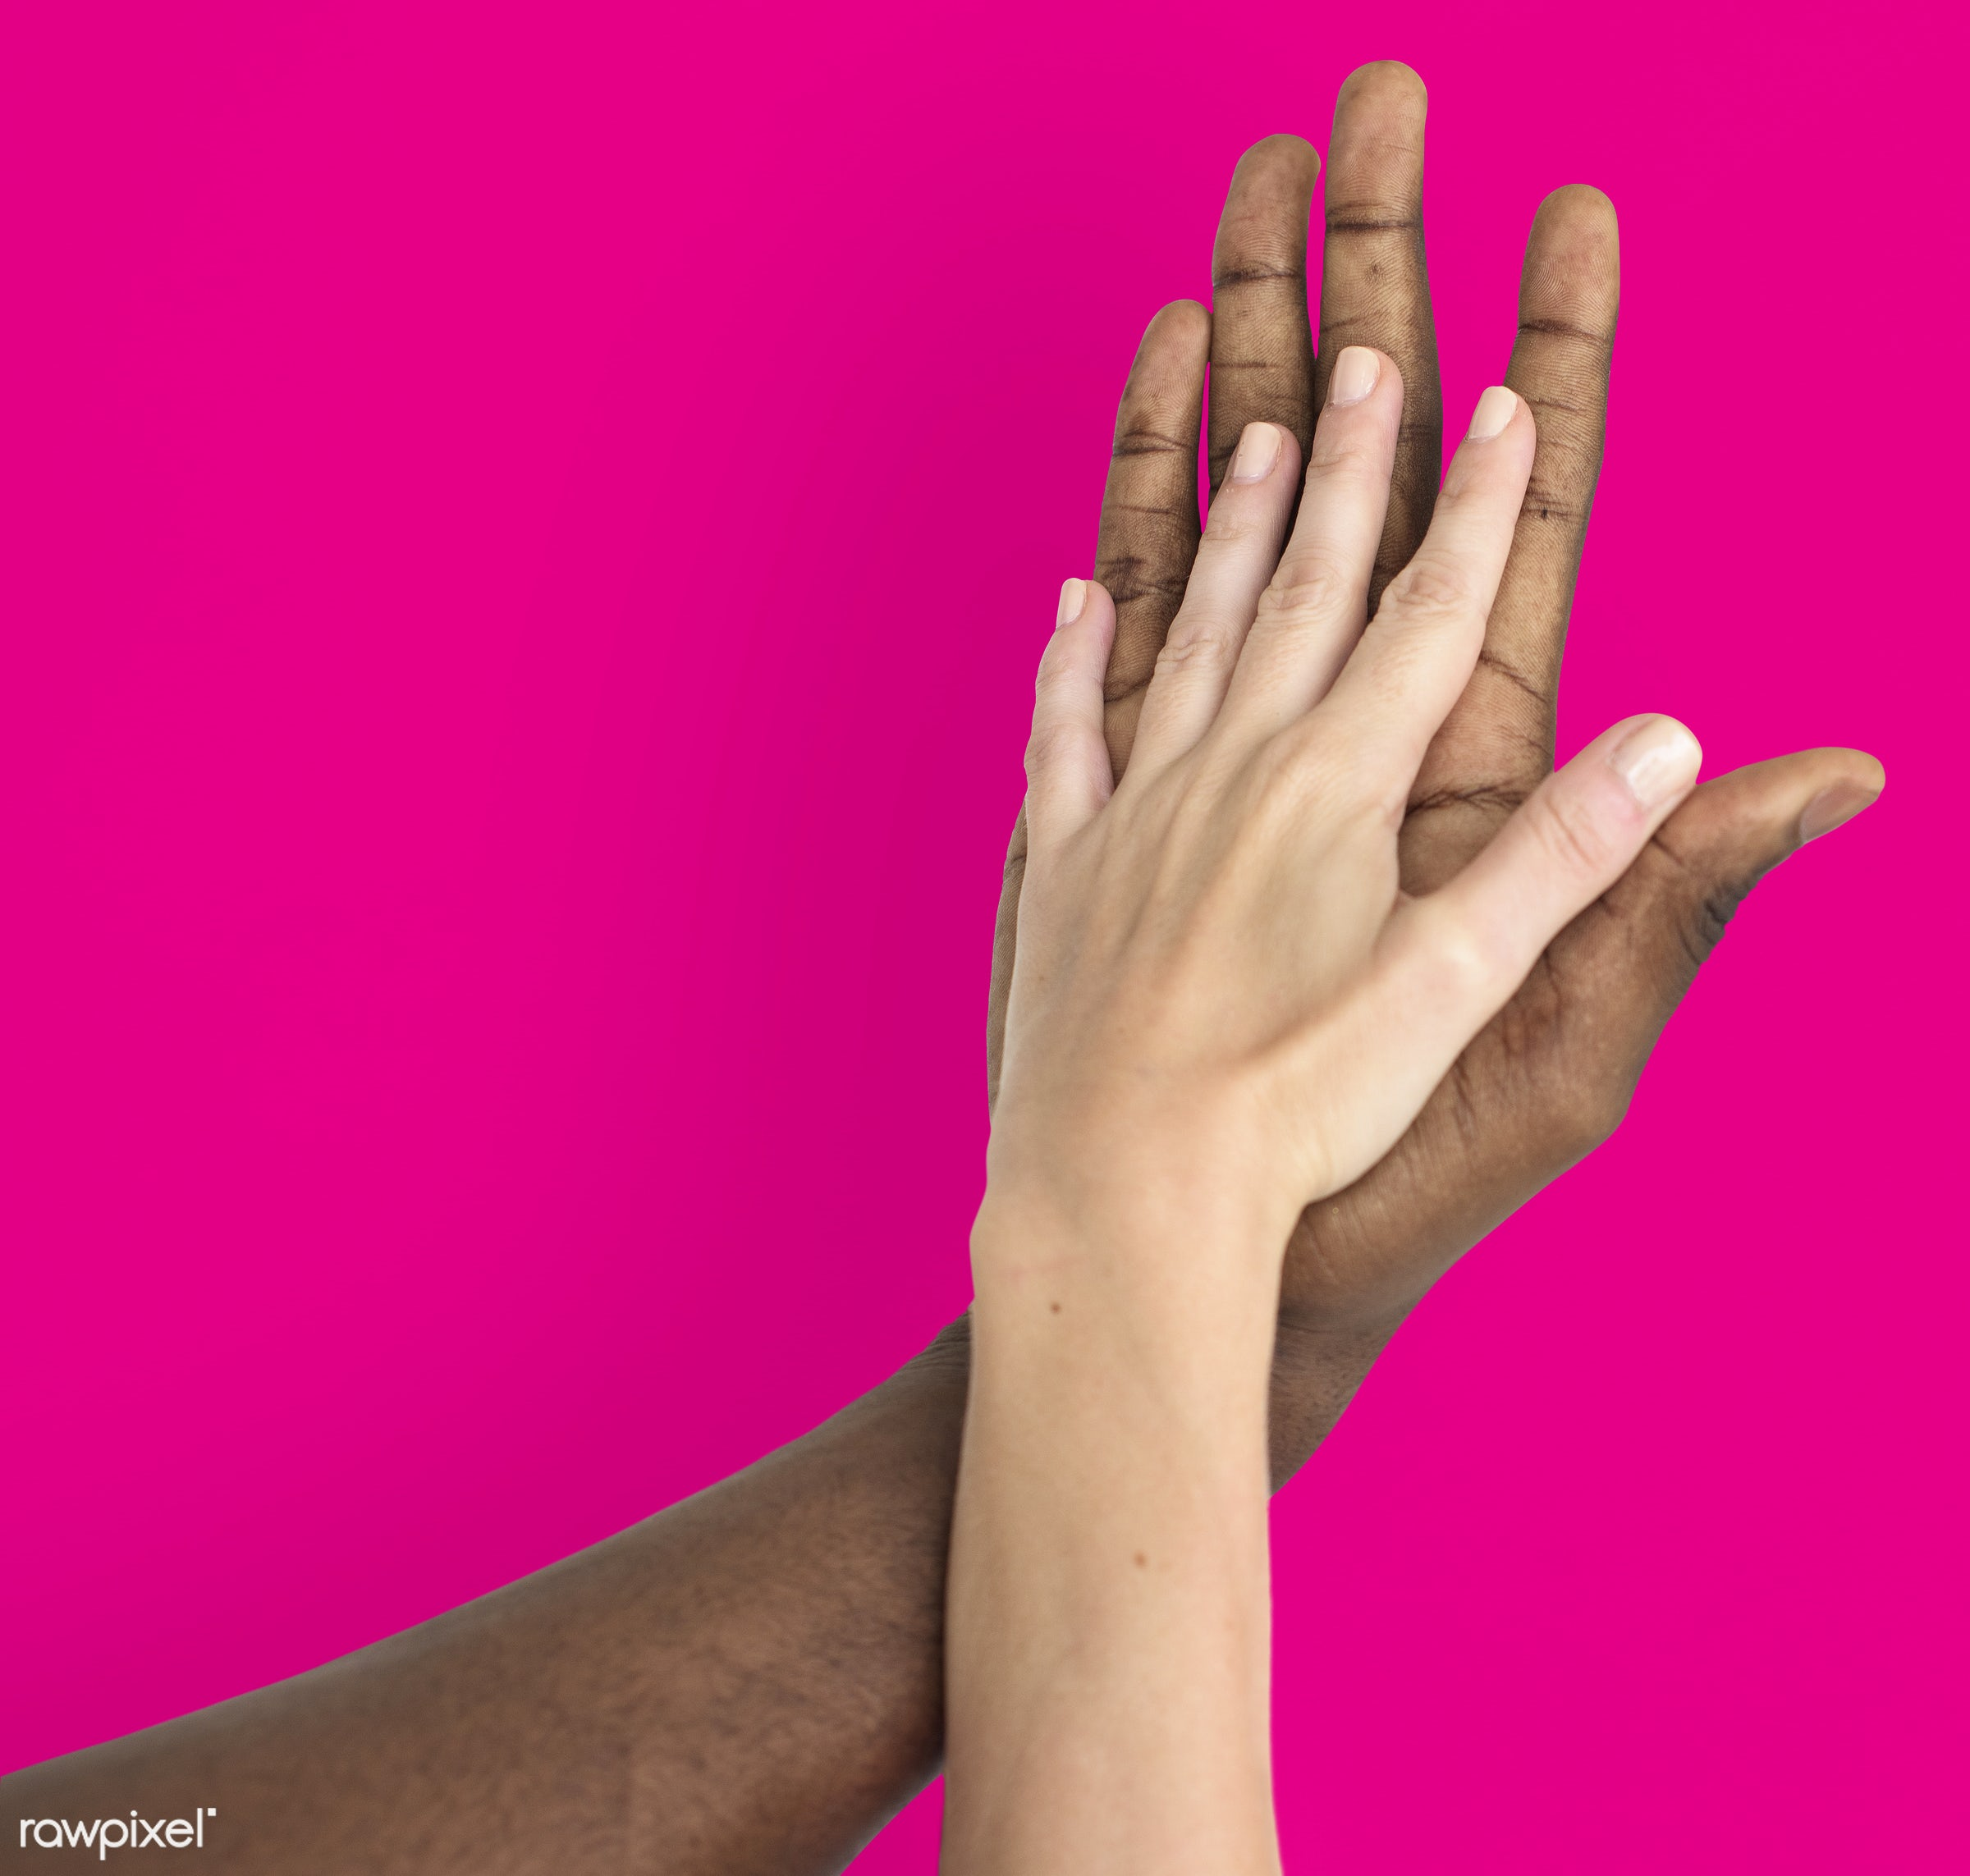 person, holding hand, race, caucasian, hand, woman, integration, friendship, showing, pink, partner, couple, man, isolated,...